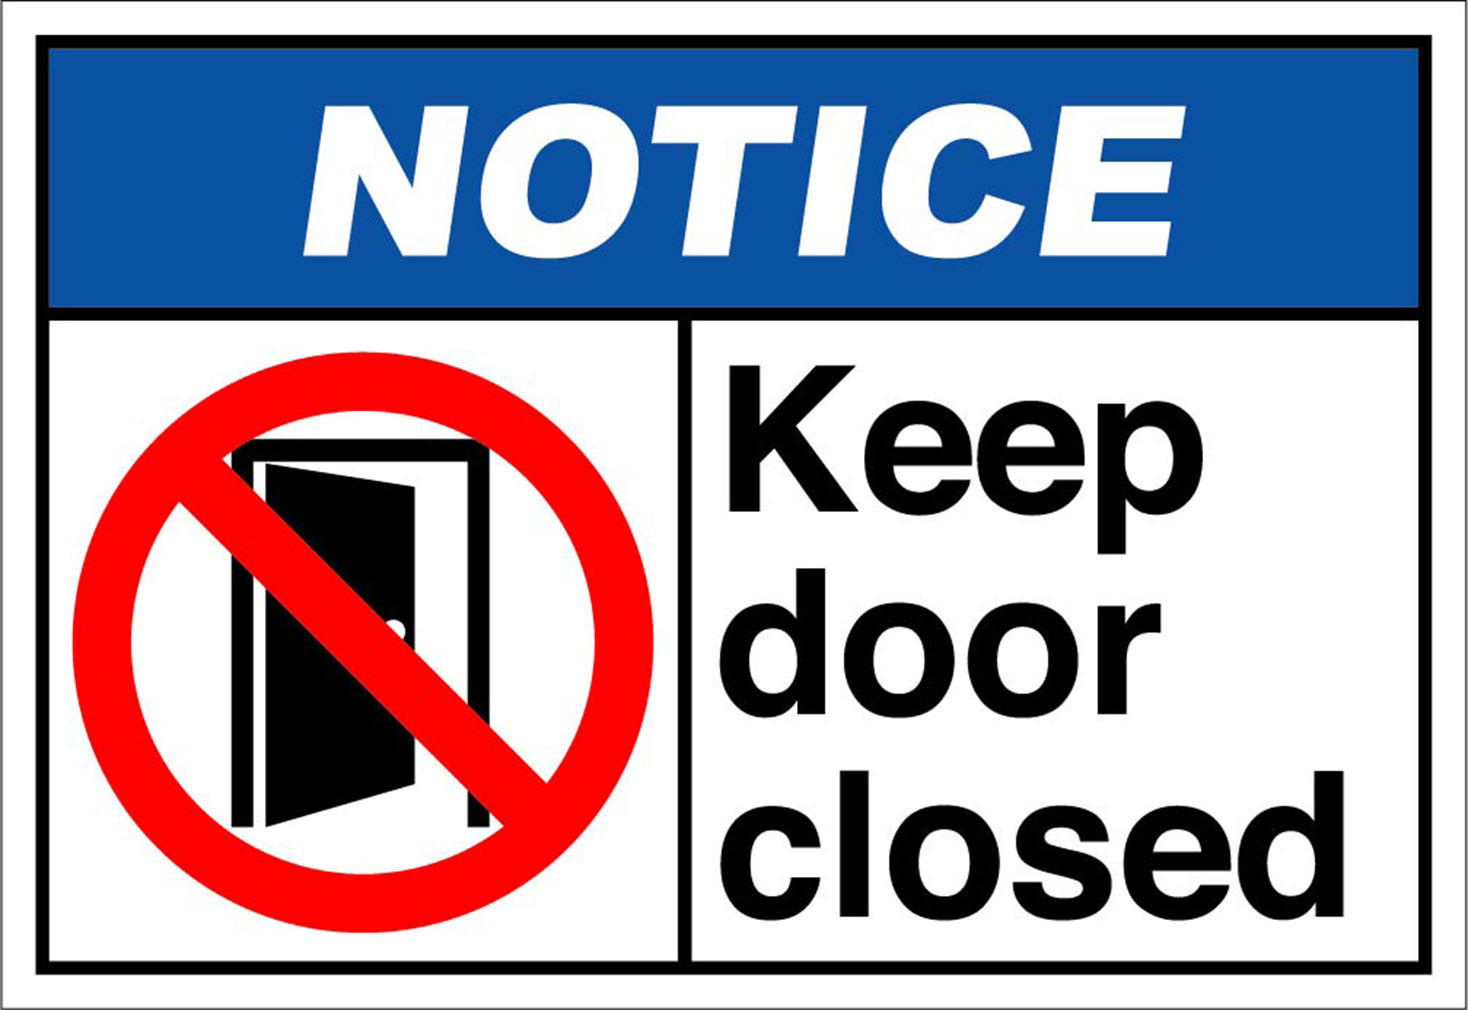 It's just an image of Witty Keep Door Closed Sign Printable